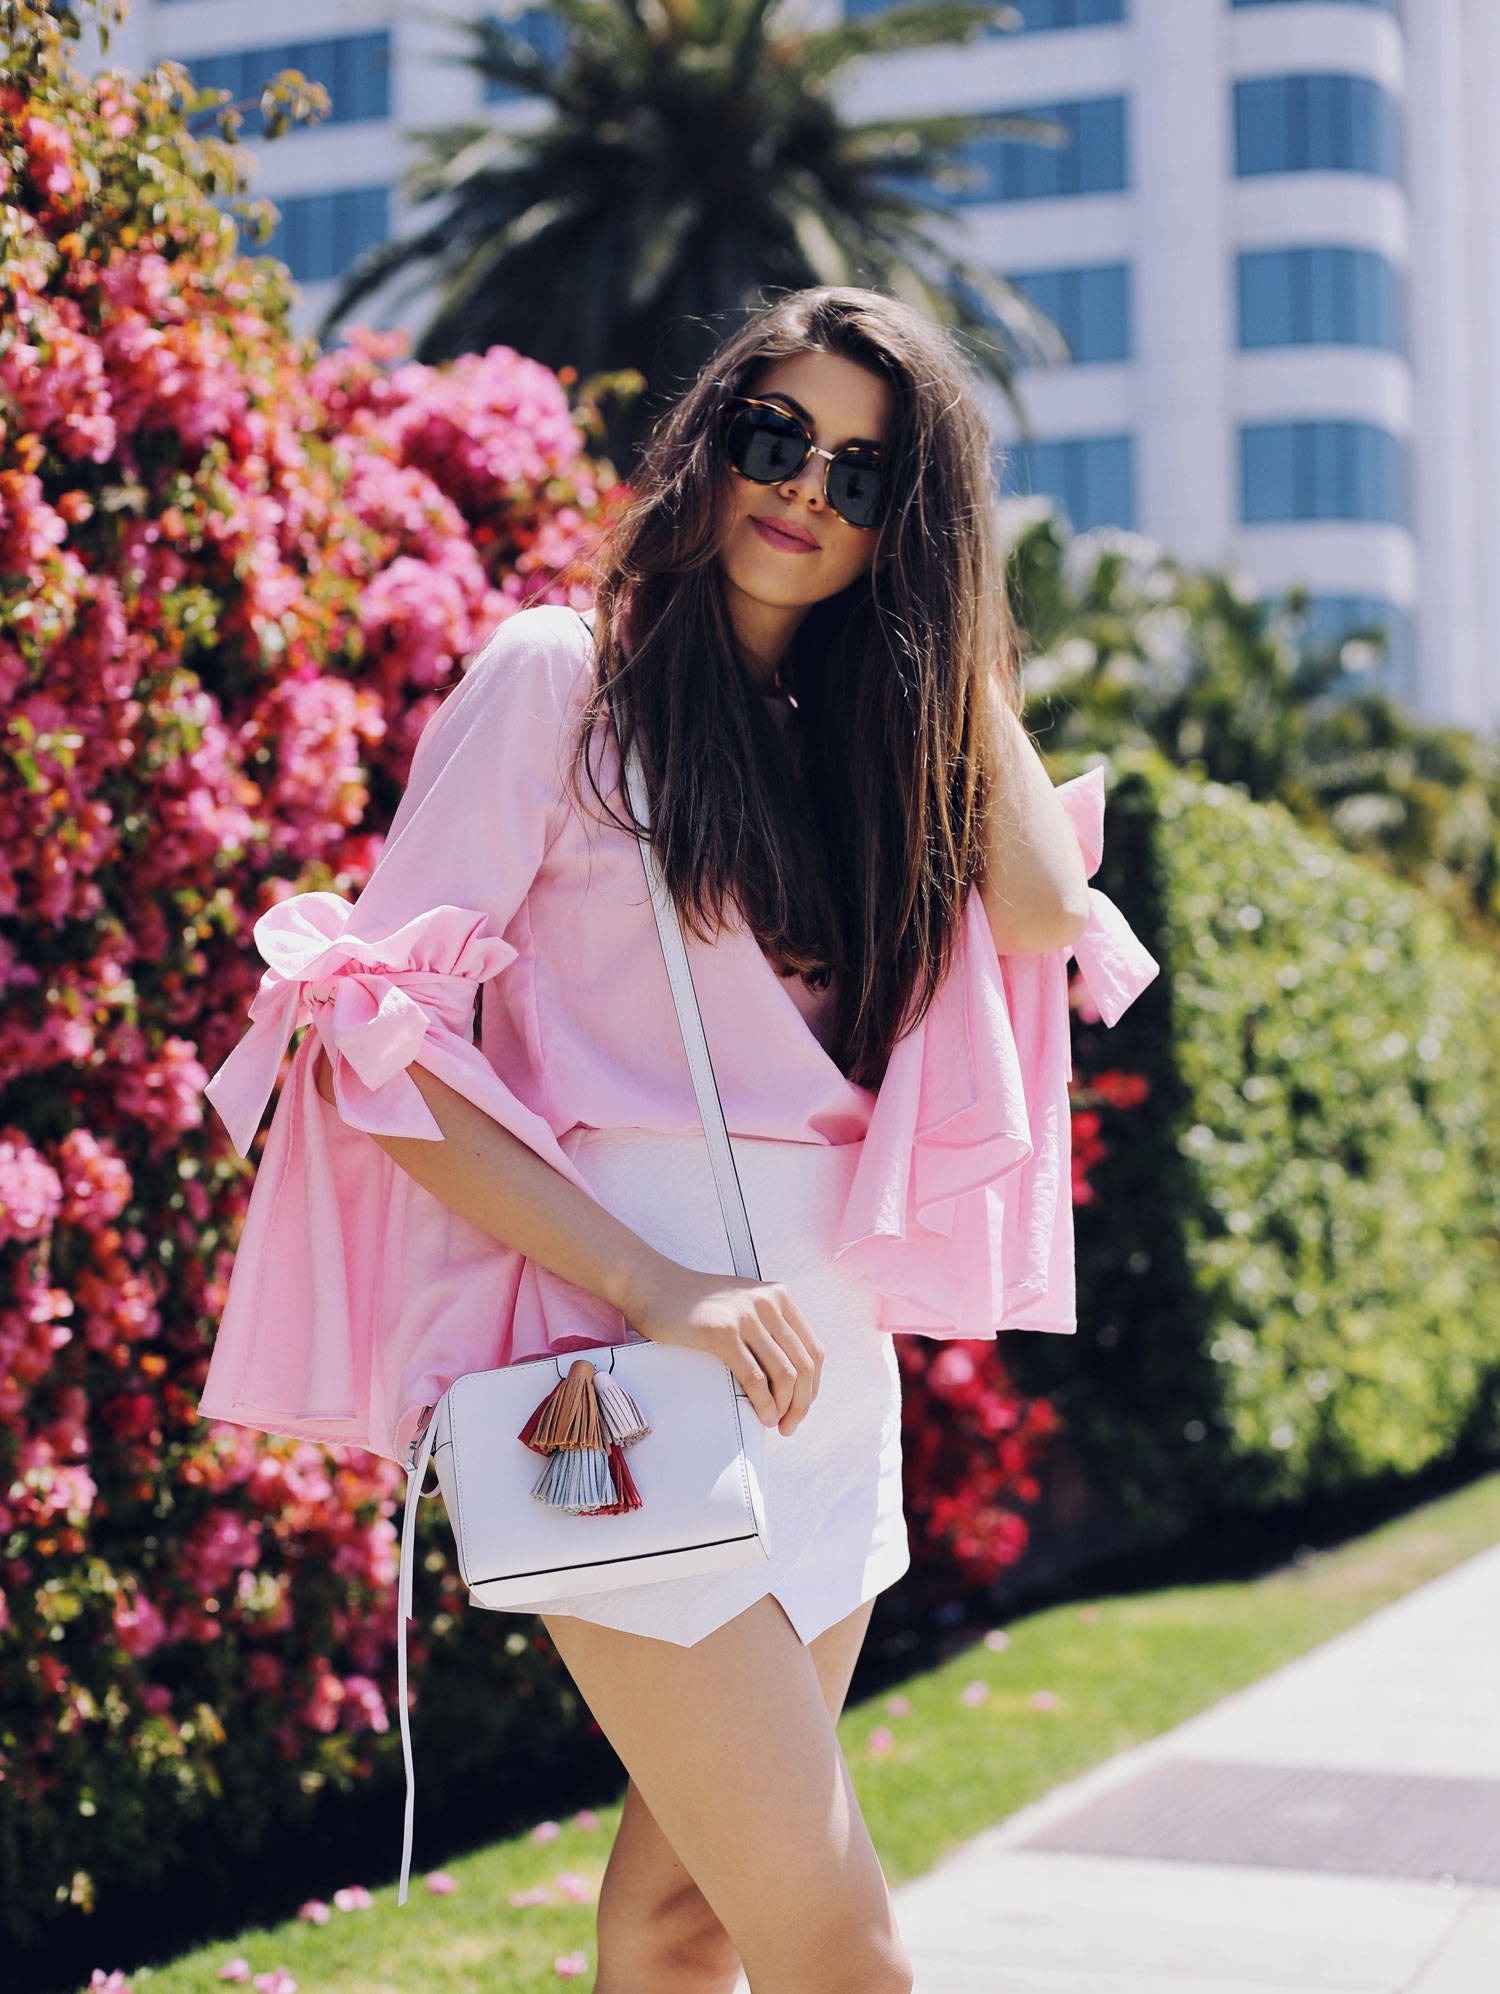 Fashion and lifestyle blogger Adelina Perrin of The Charming Olive wearing Chicwish Pink Top, Revolve White Skorts, Rebecca Minkoff bag